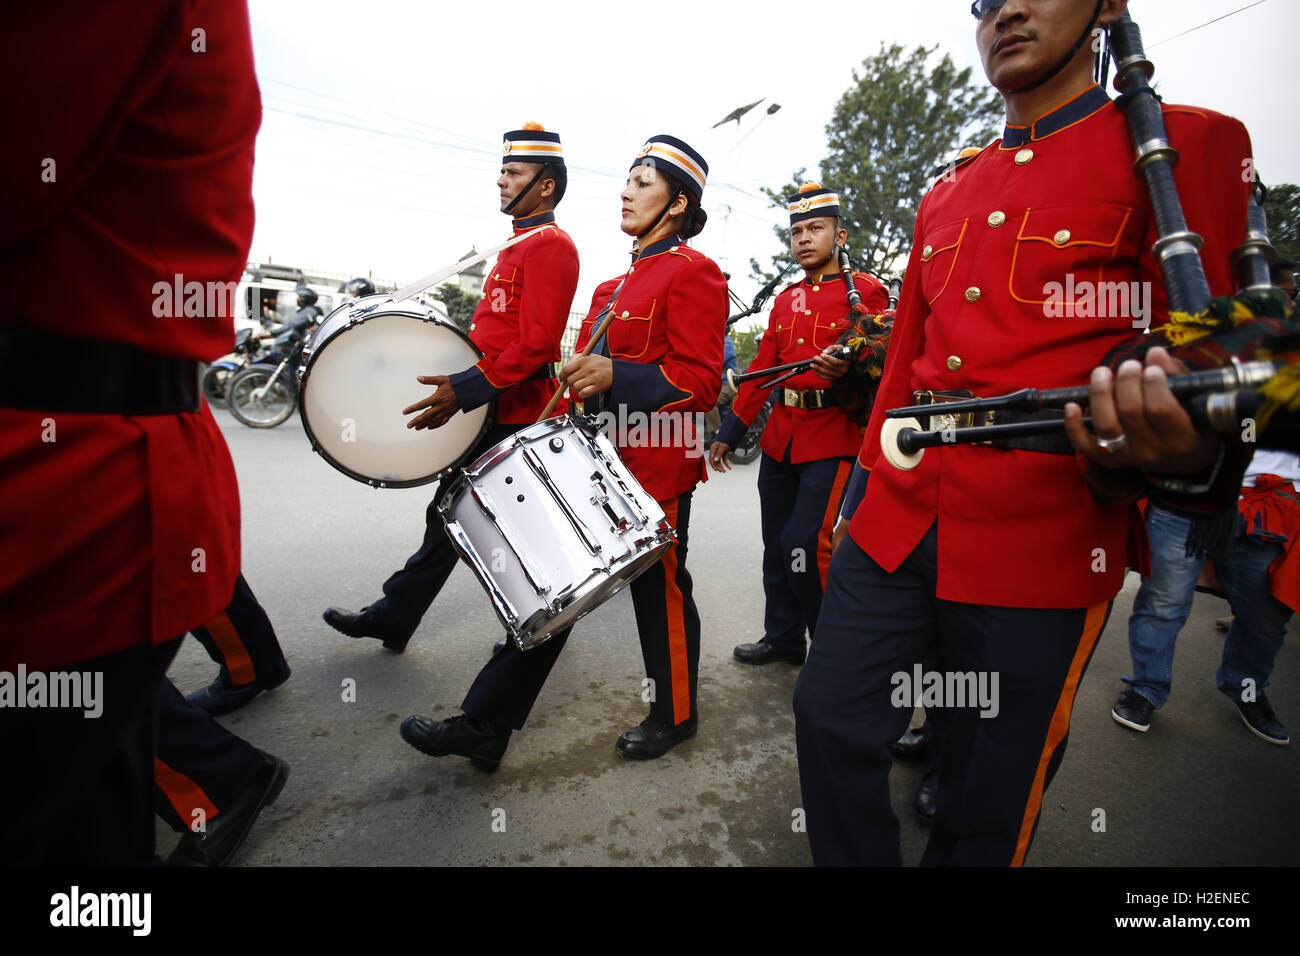 Kathmandu, Nepal. 27th Sep, 2016. Nepalese Army band play instruments taking part in a rally to celebrate the 37th Stock Photo